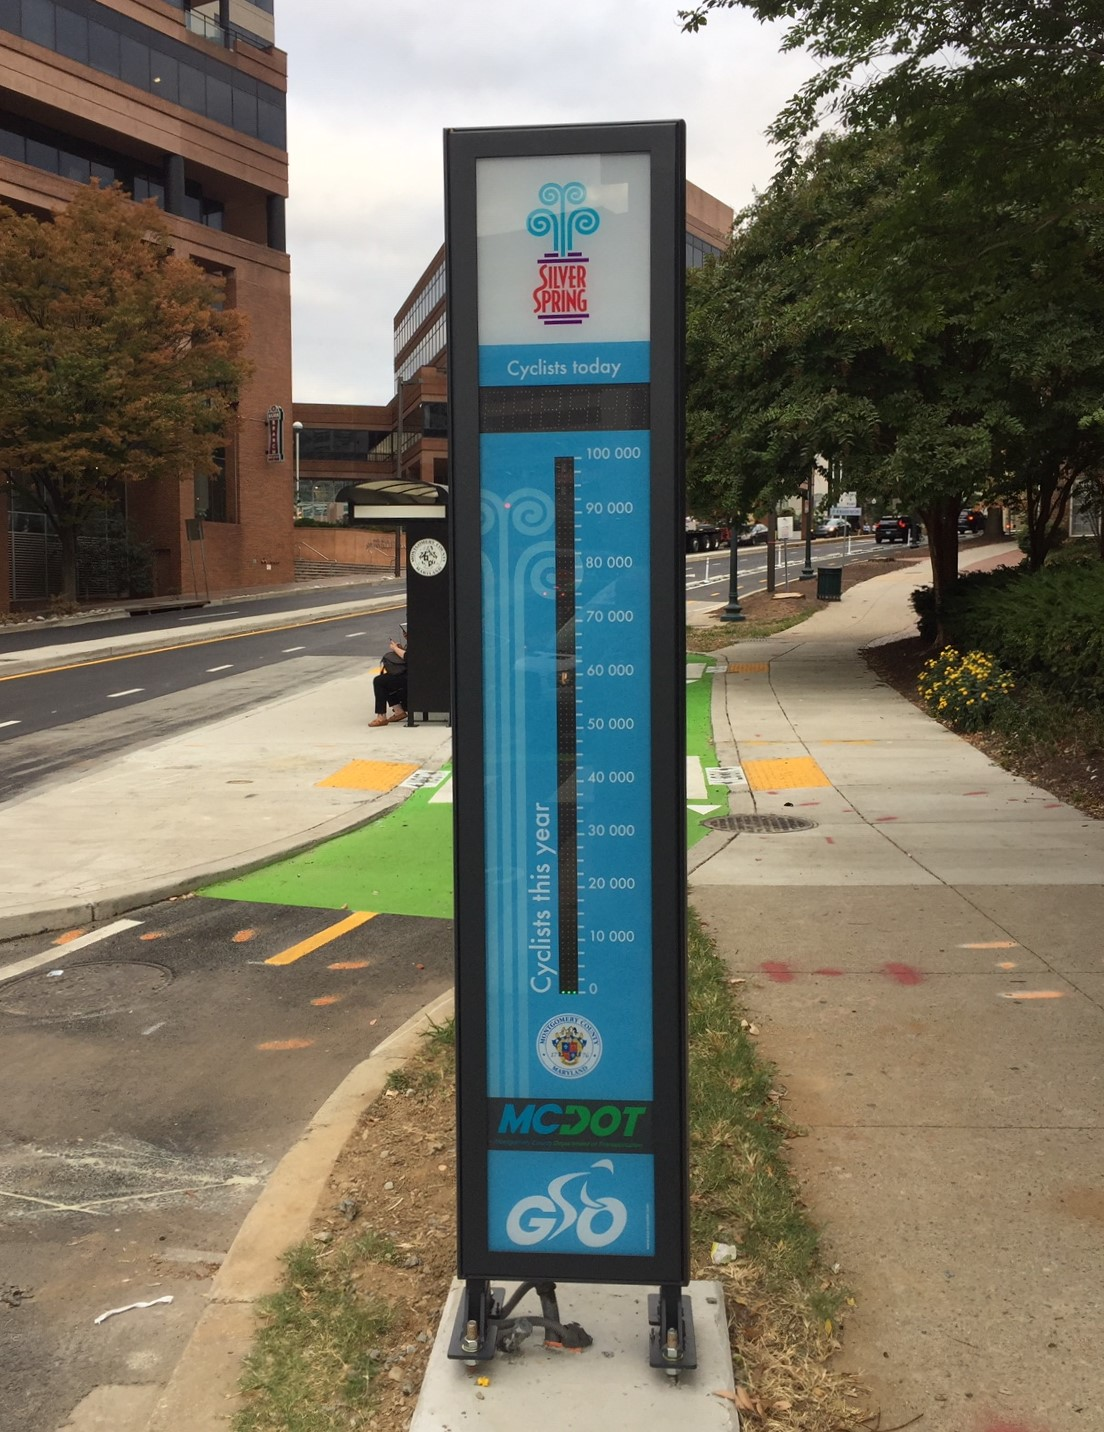 Silver Spring Bike Counter